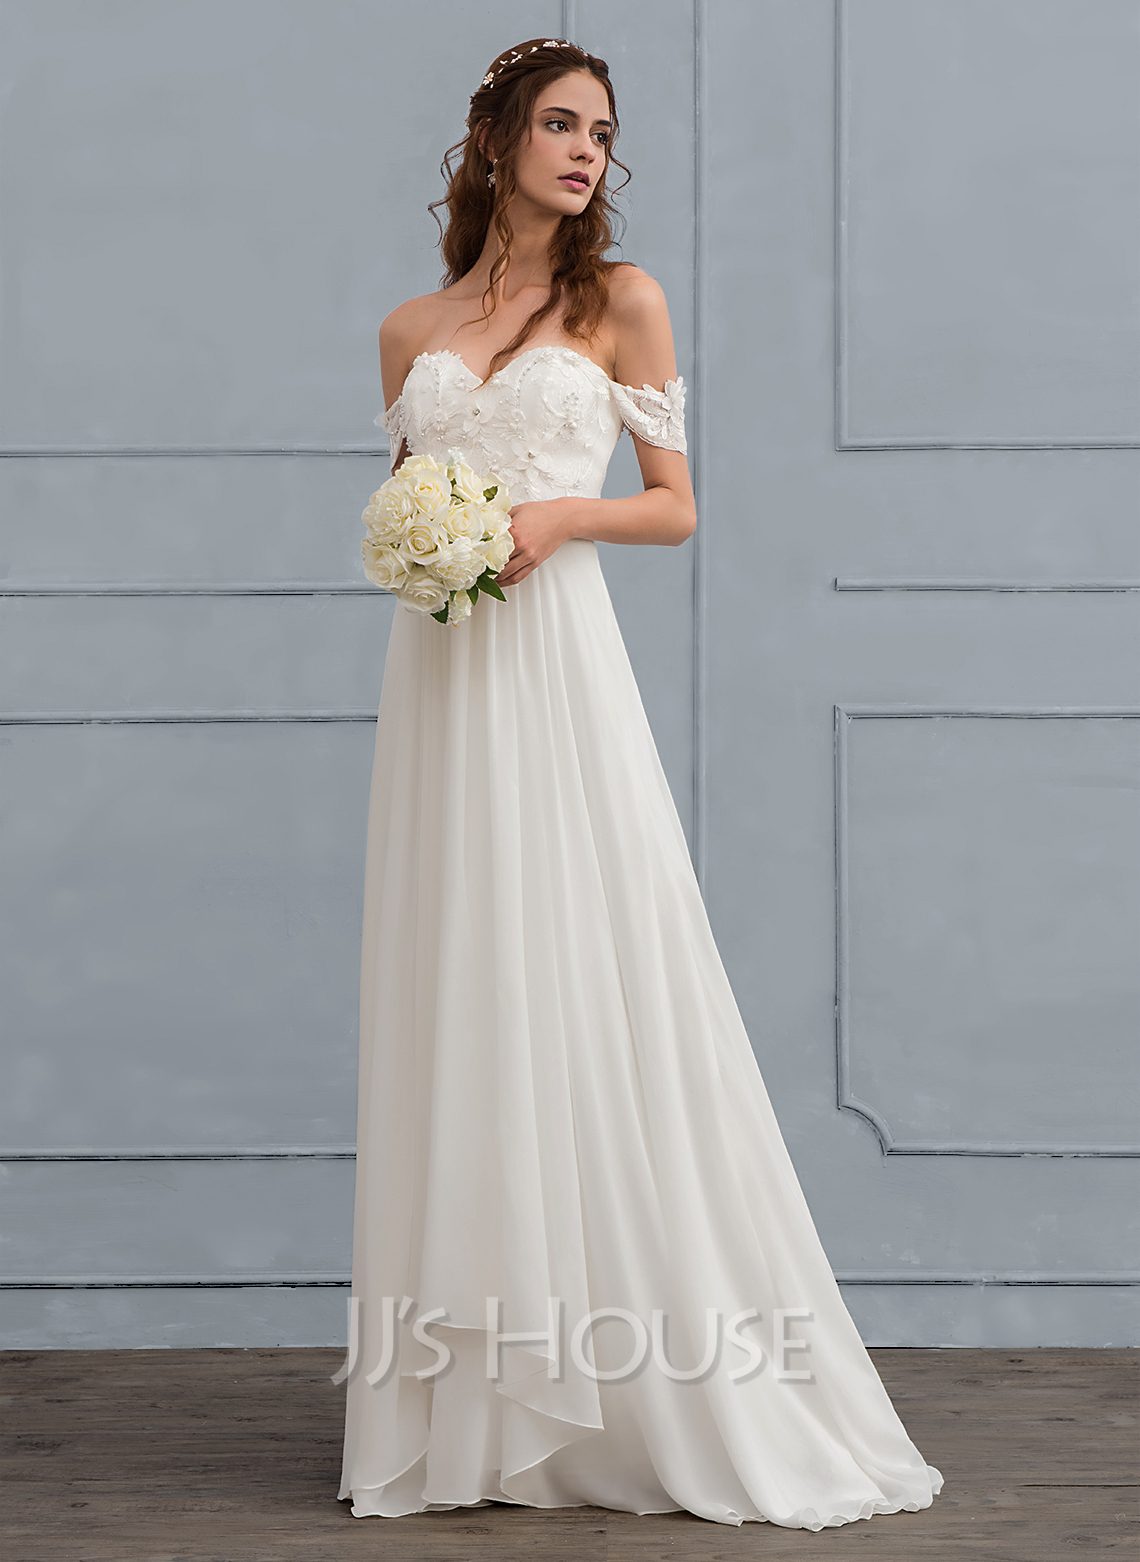 cf59107eda A-Line/Princess Off-the-Shoulder Sweep Train Chiffon Wedding Dress With.  Loading zoom